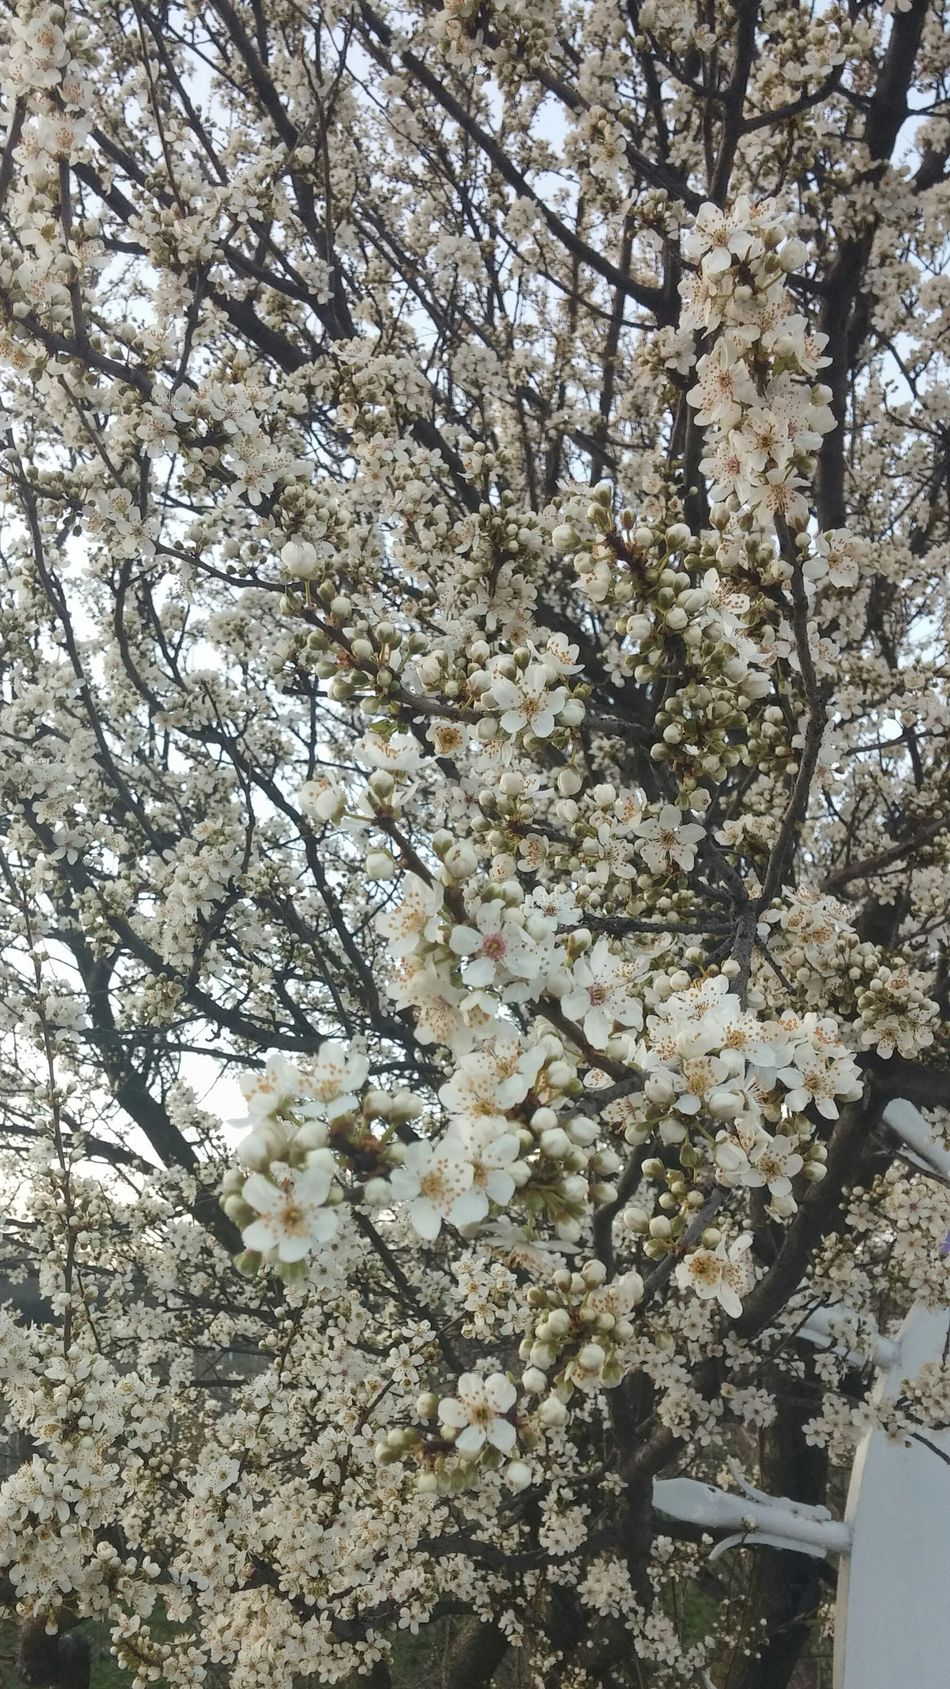 Spring is coming 🌸 Blossoming Tree White Blossoms Blooming Spring Has Arrived Branches And Flower EyeEm Nature Lover Eye4photography  Urban Spring Fever